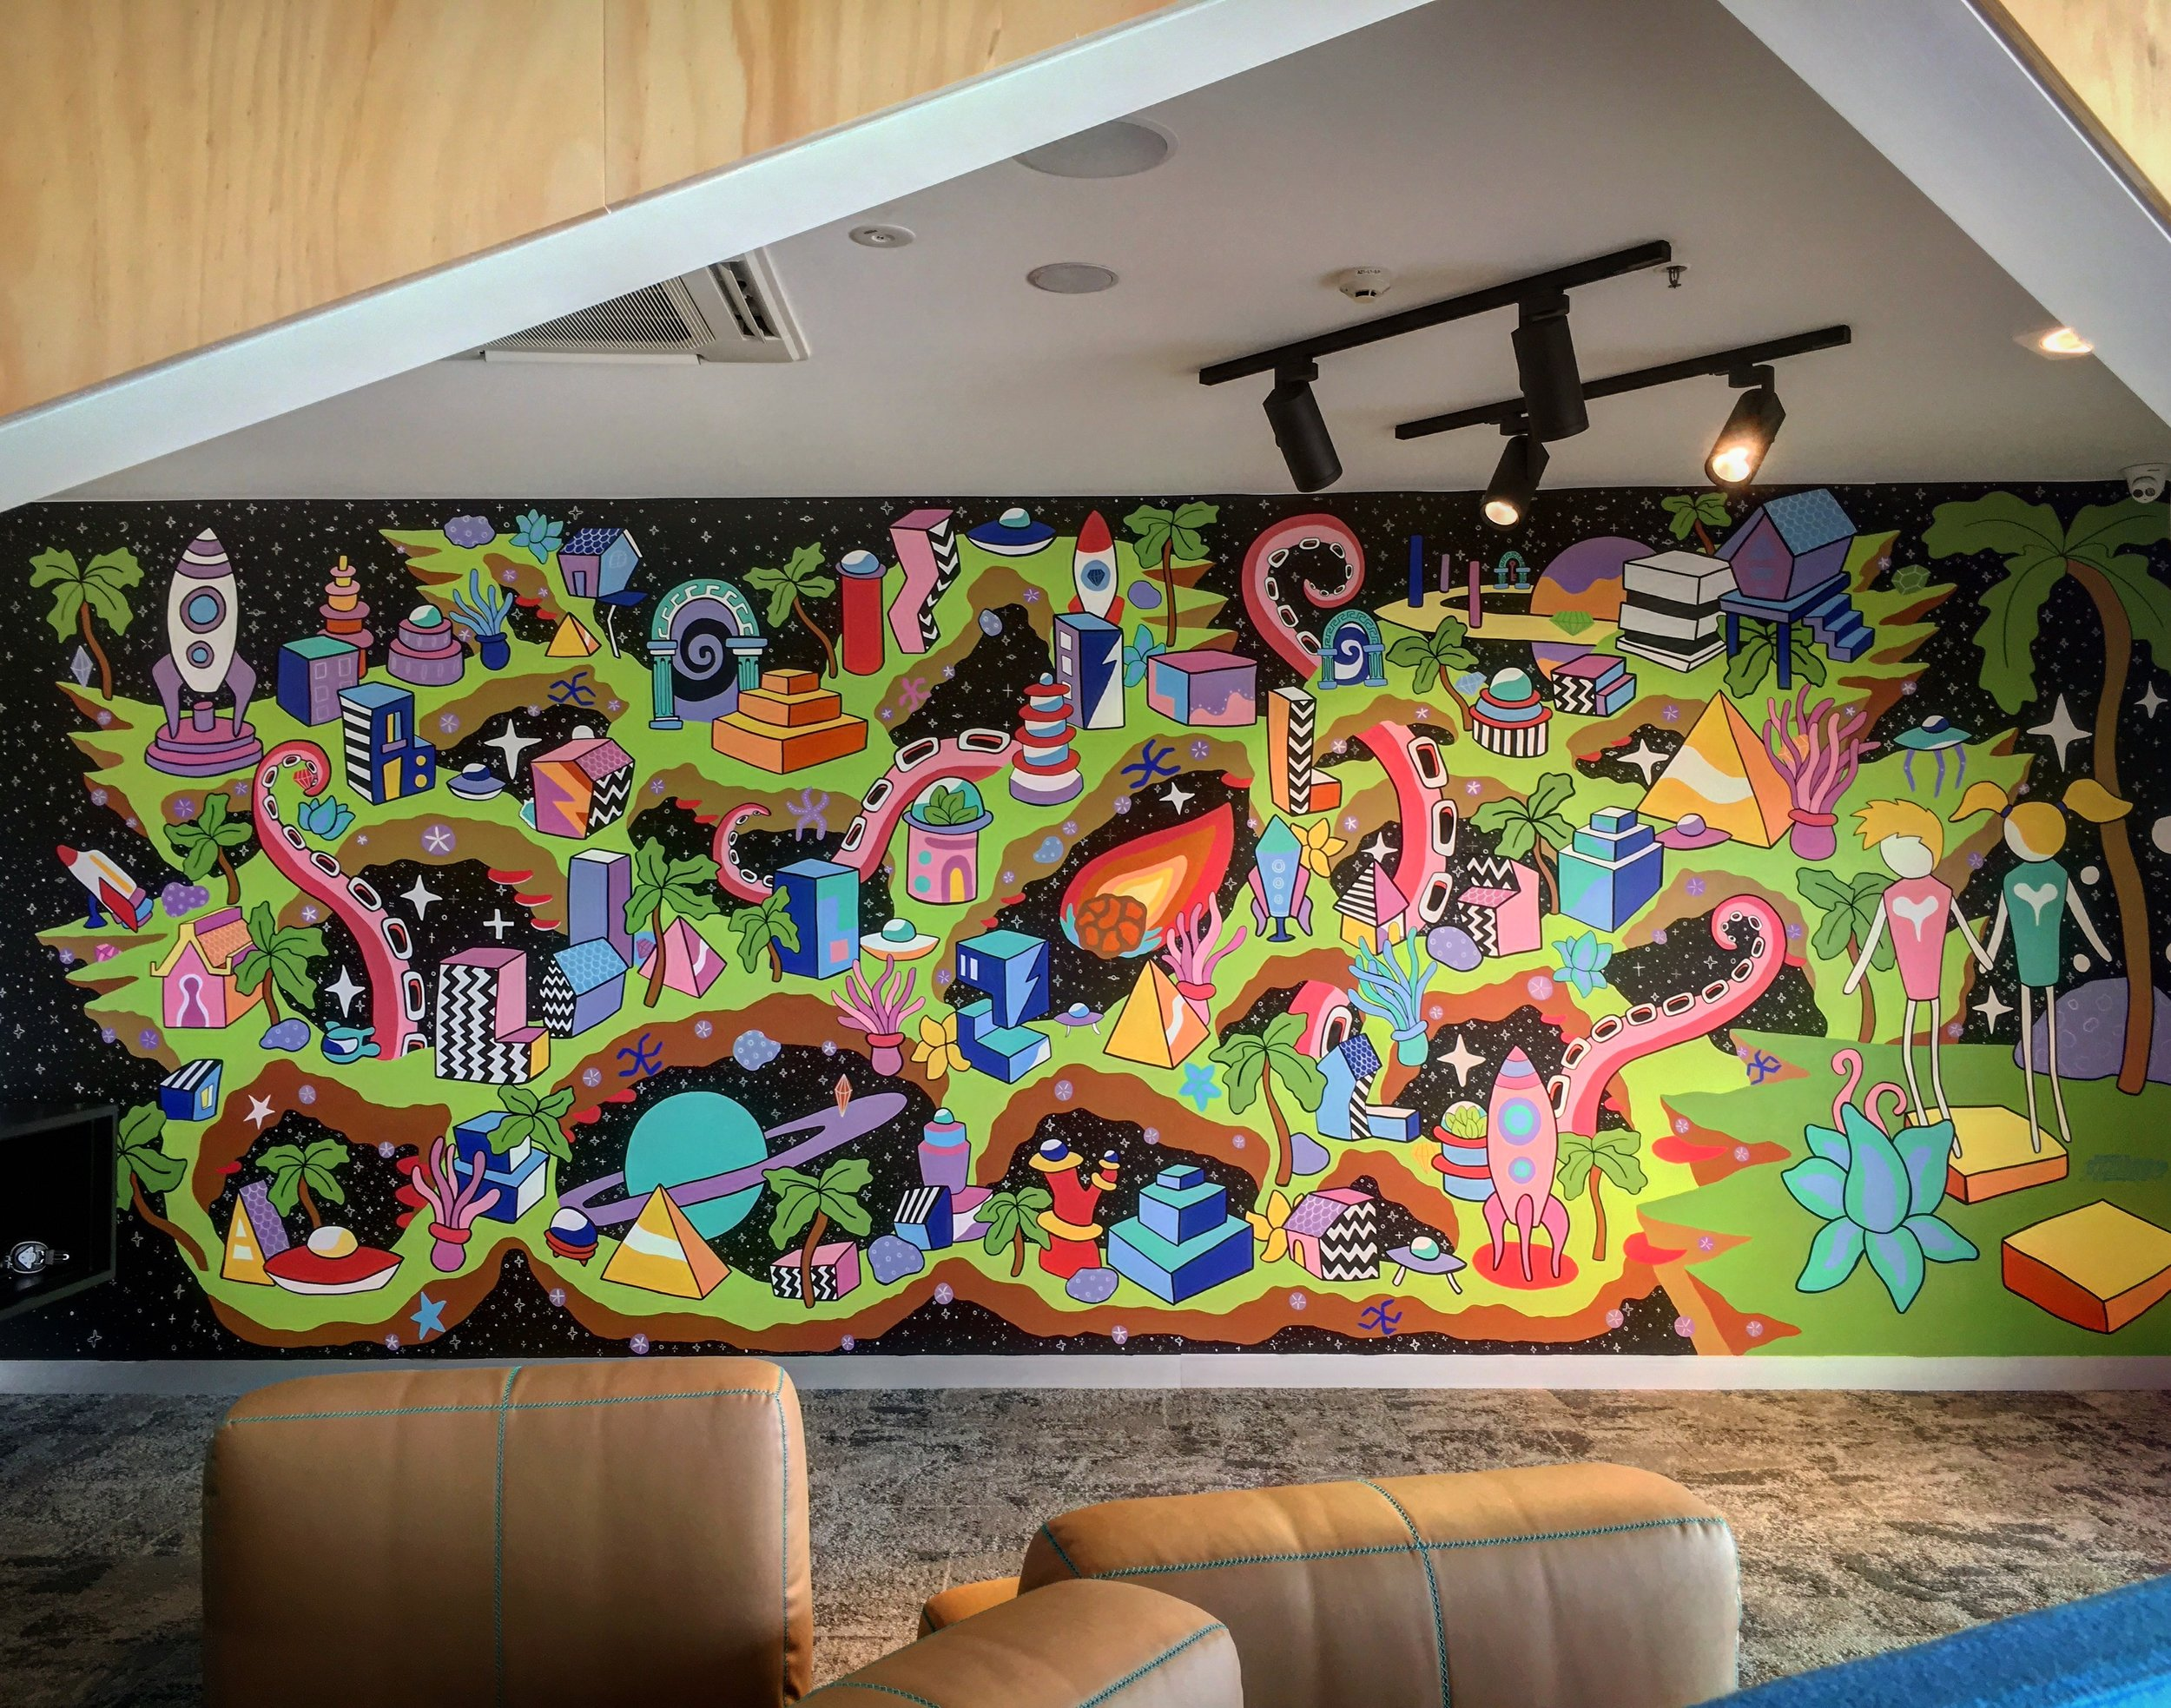 The completed Skyworld mural at Aldinga Library (which was still under construction at this stage).